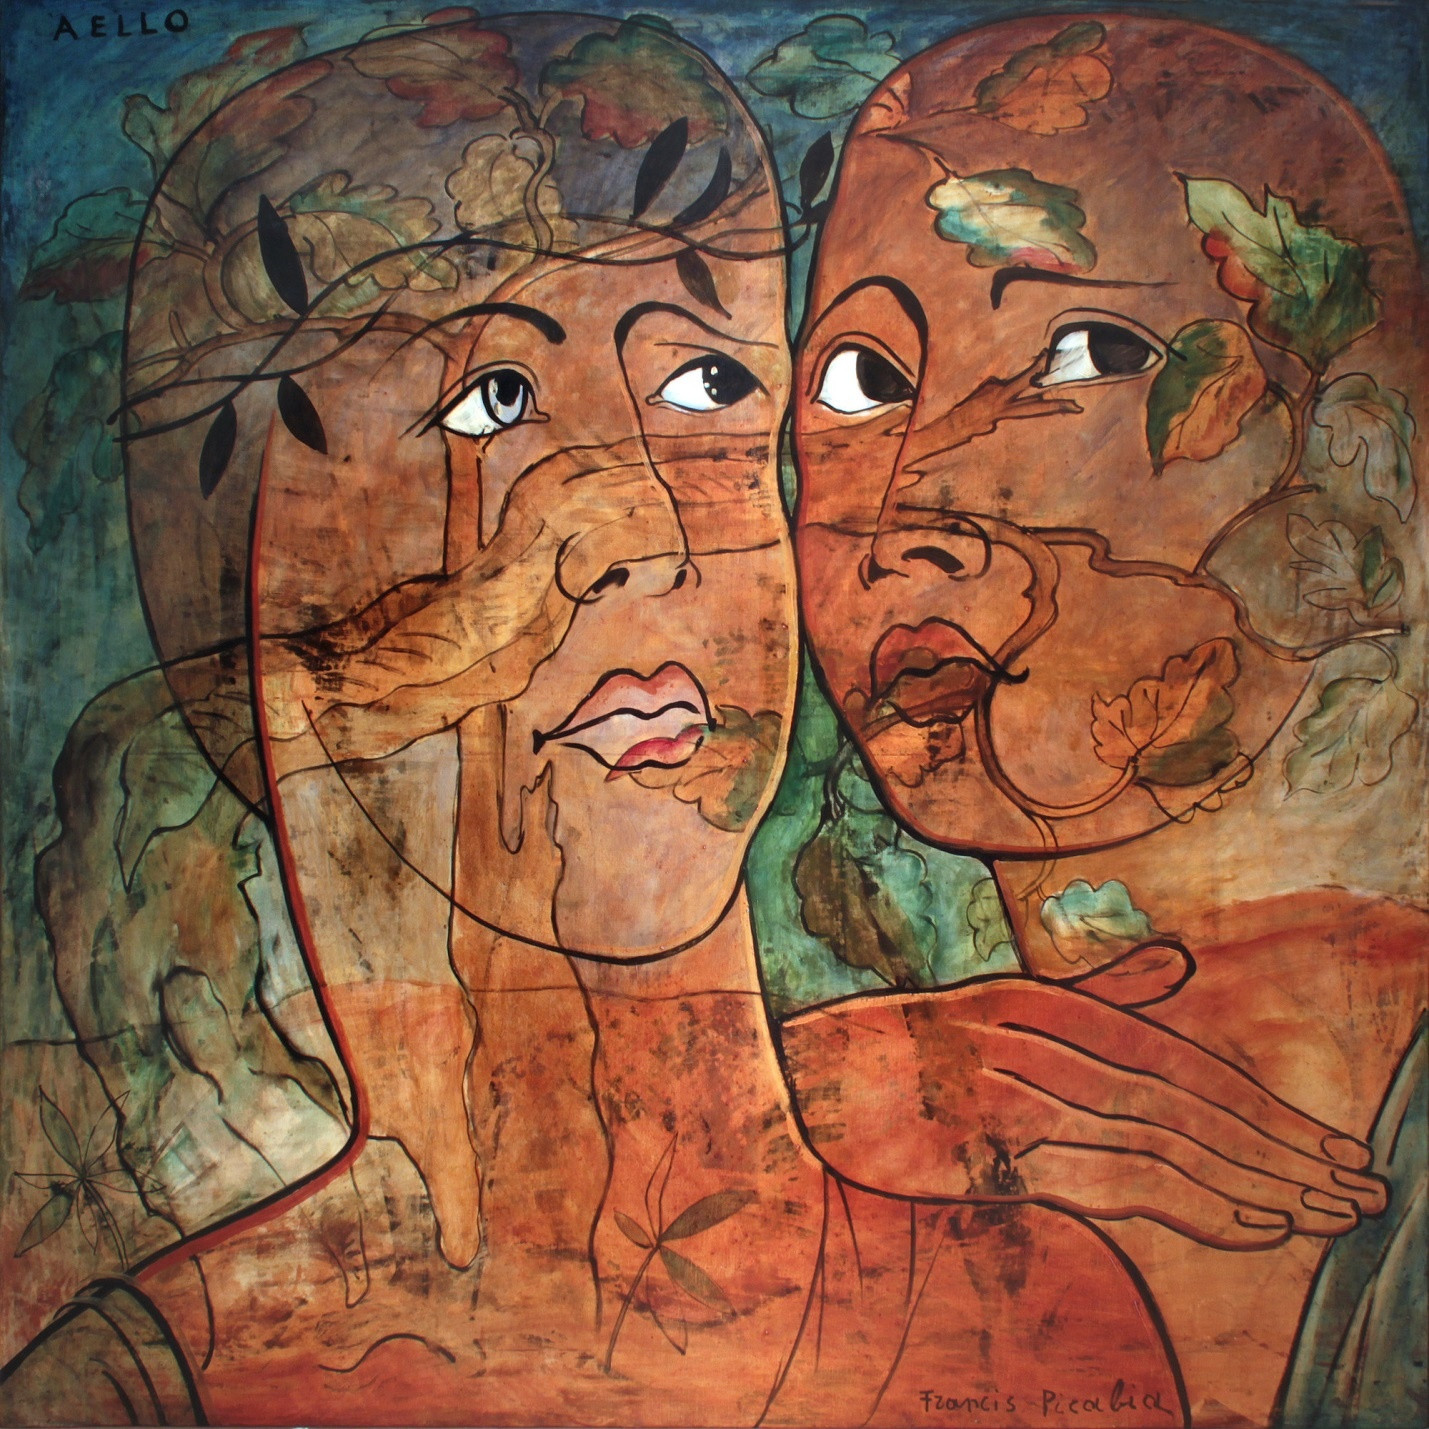 "Francis Picabia. Aello. 1930. Oil on canvas, 66 9/16 × 66 9/16"" (169 × 169 cm). Private collection. © 2016 Artist Rights Society (ARS), New York/ADAGP, Paris"